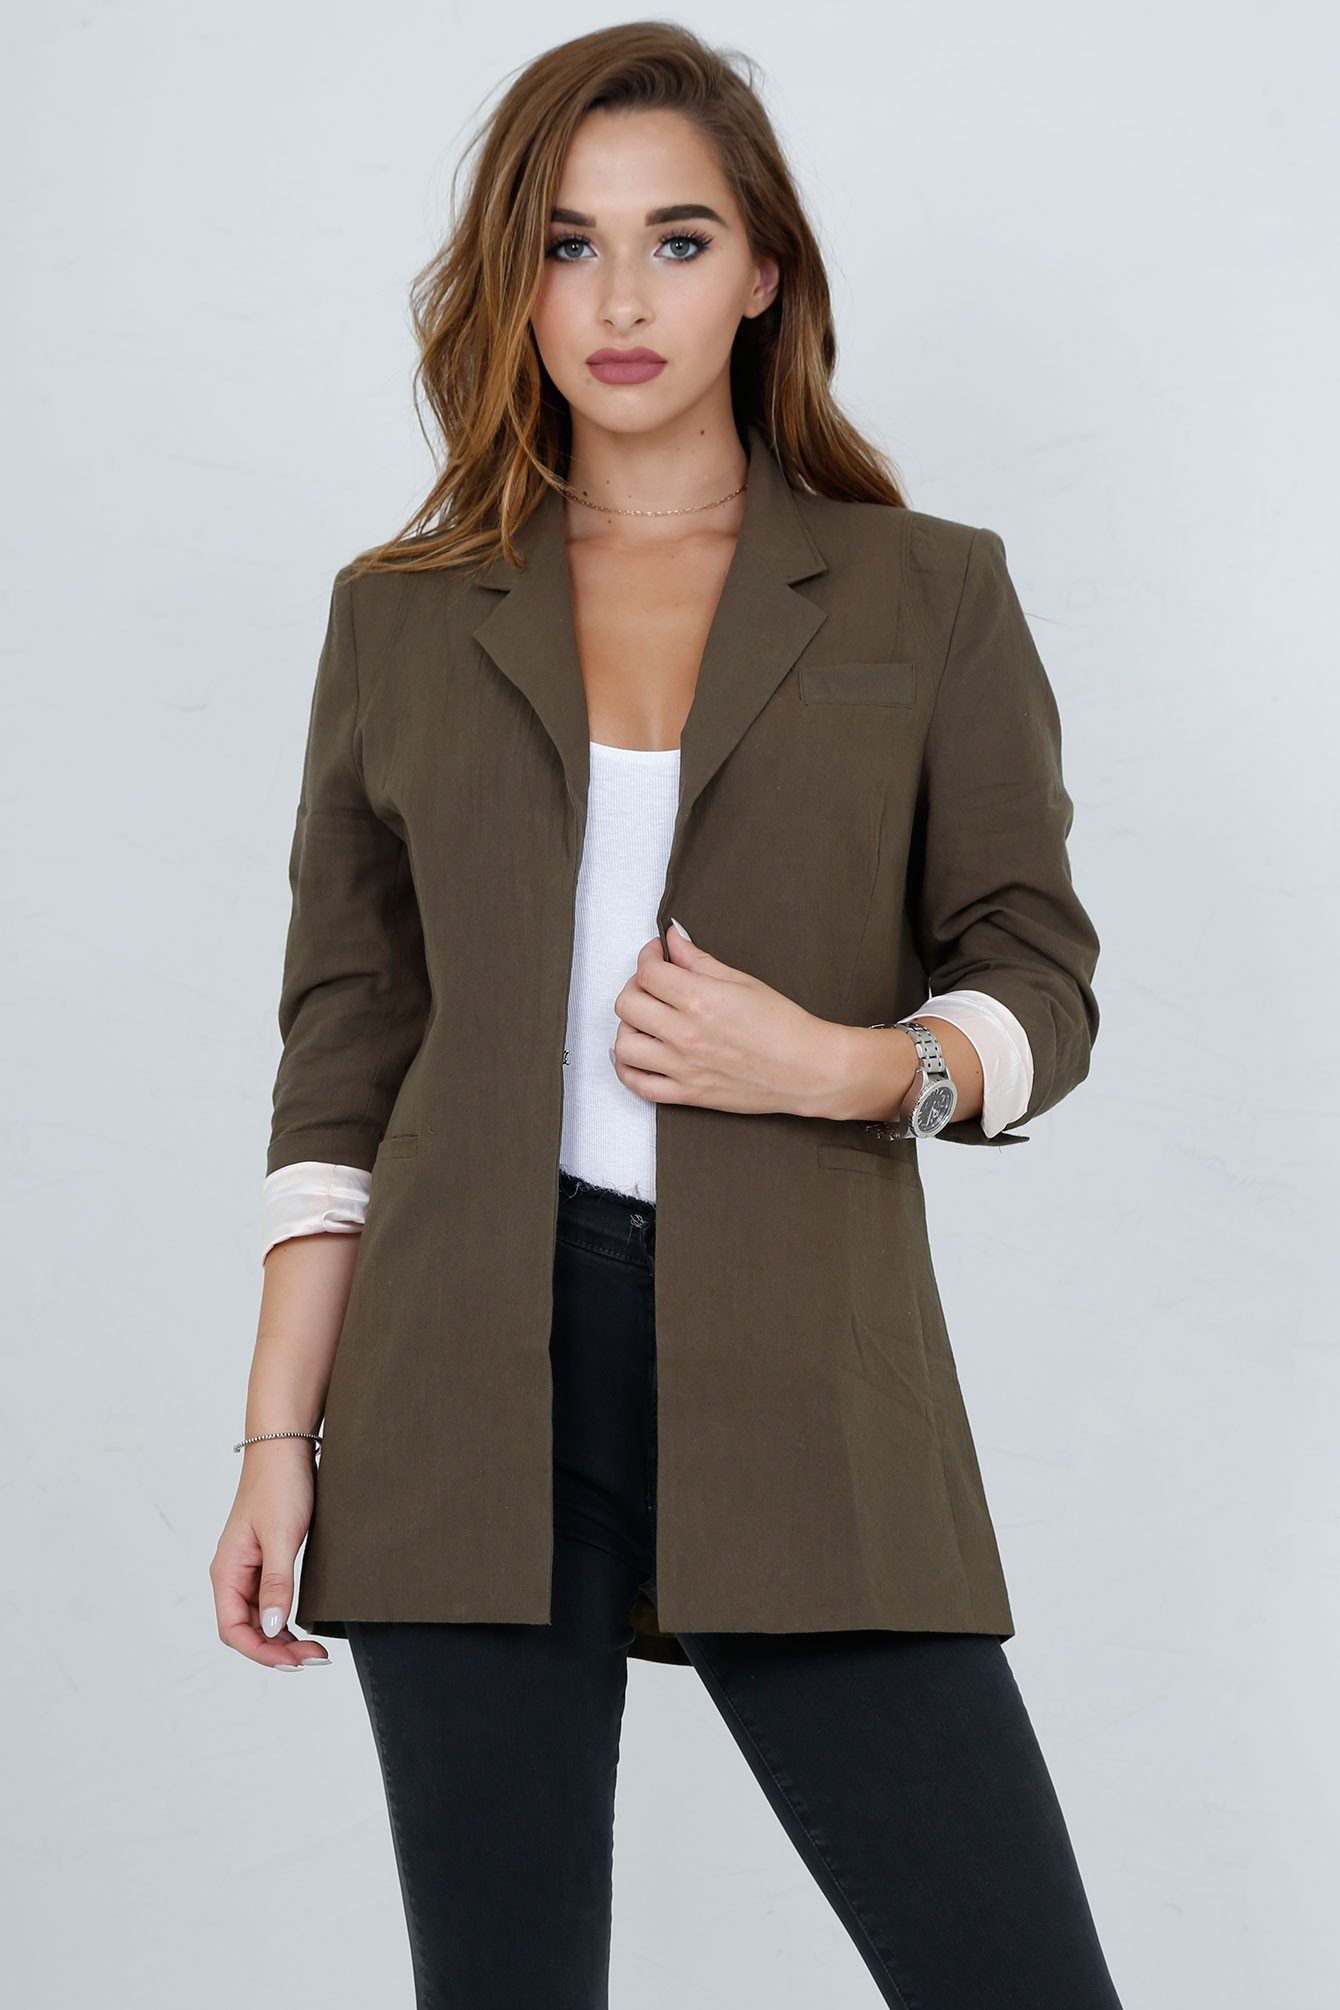 SCARLET | Perfect Blazer in Army - Scarlet Clothing  - 12